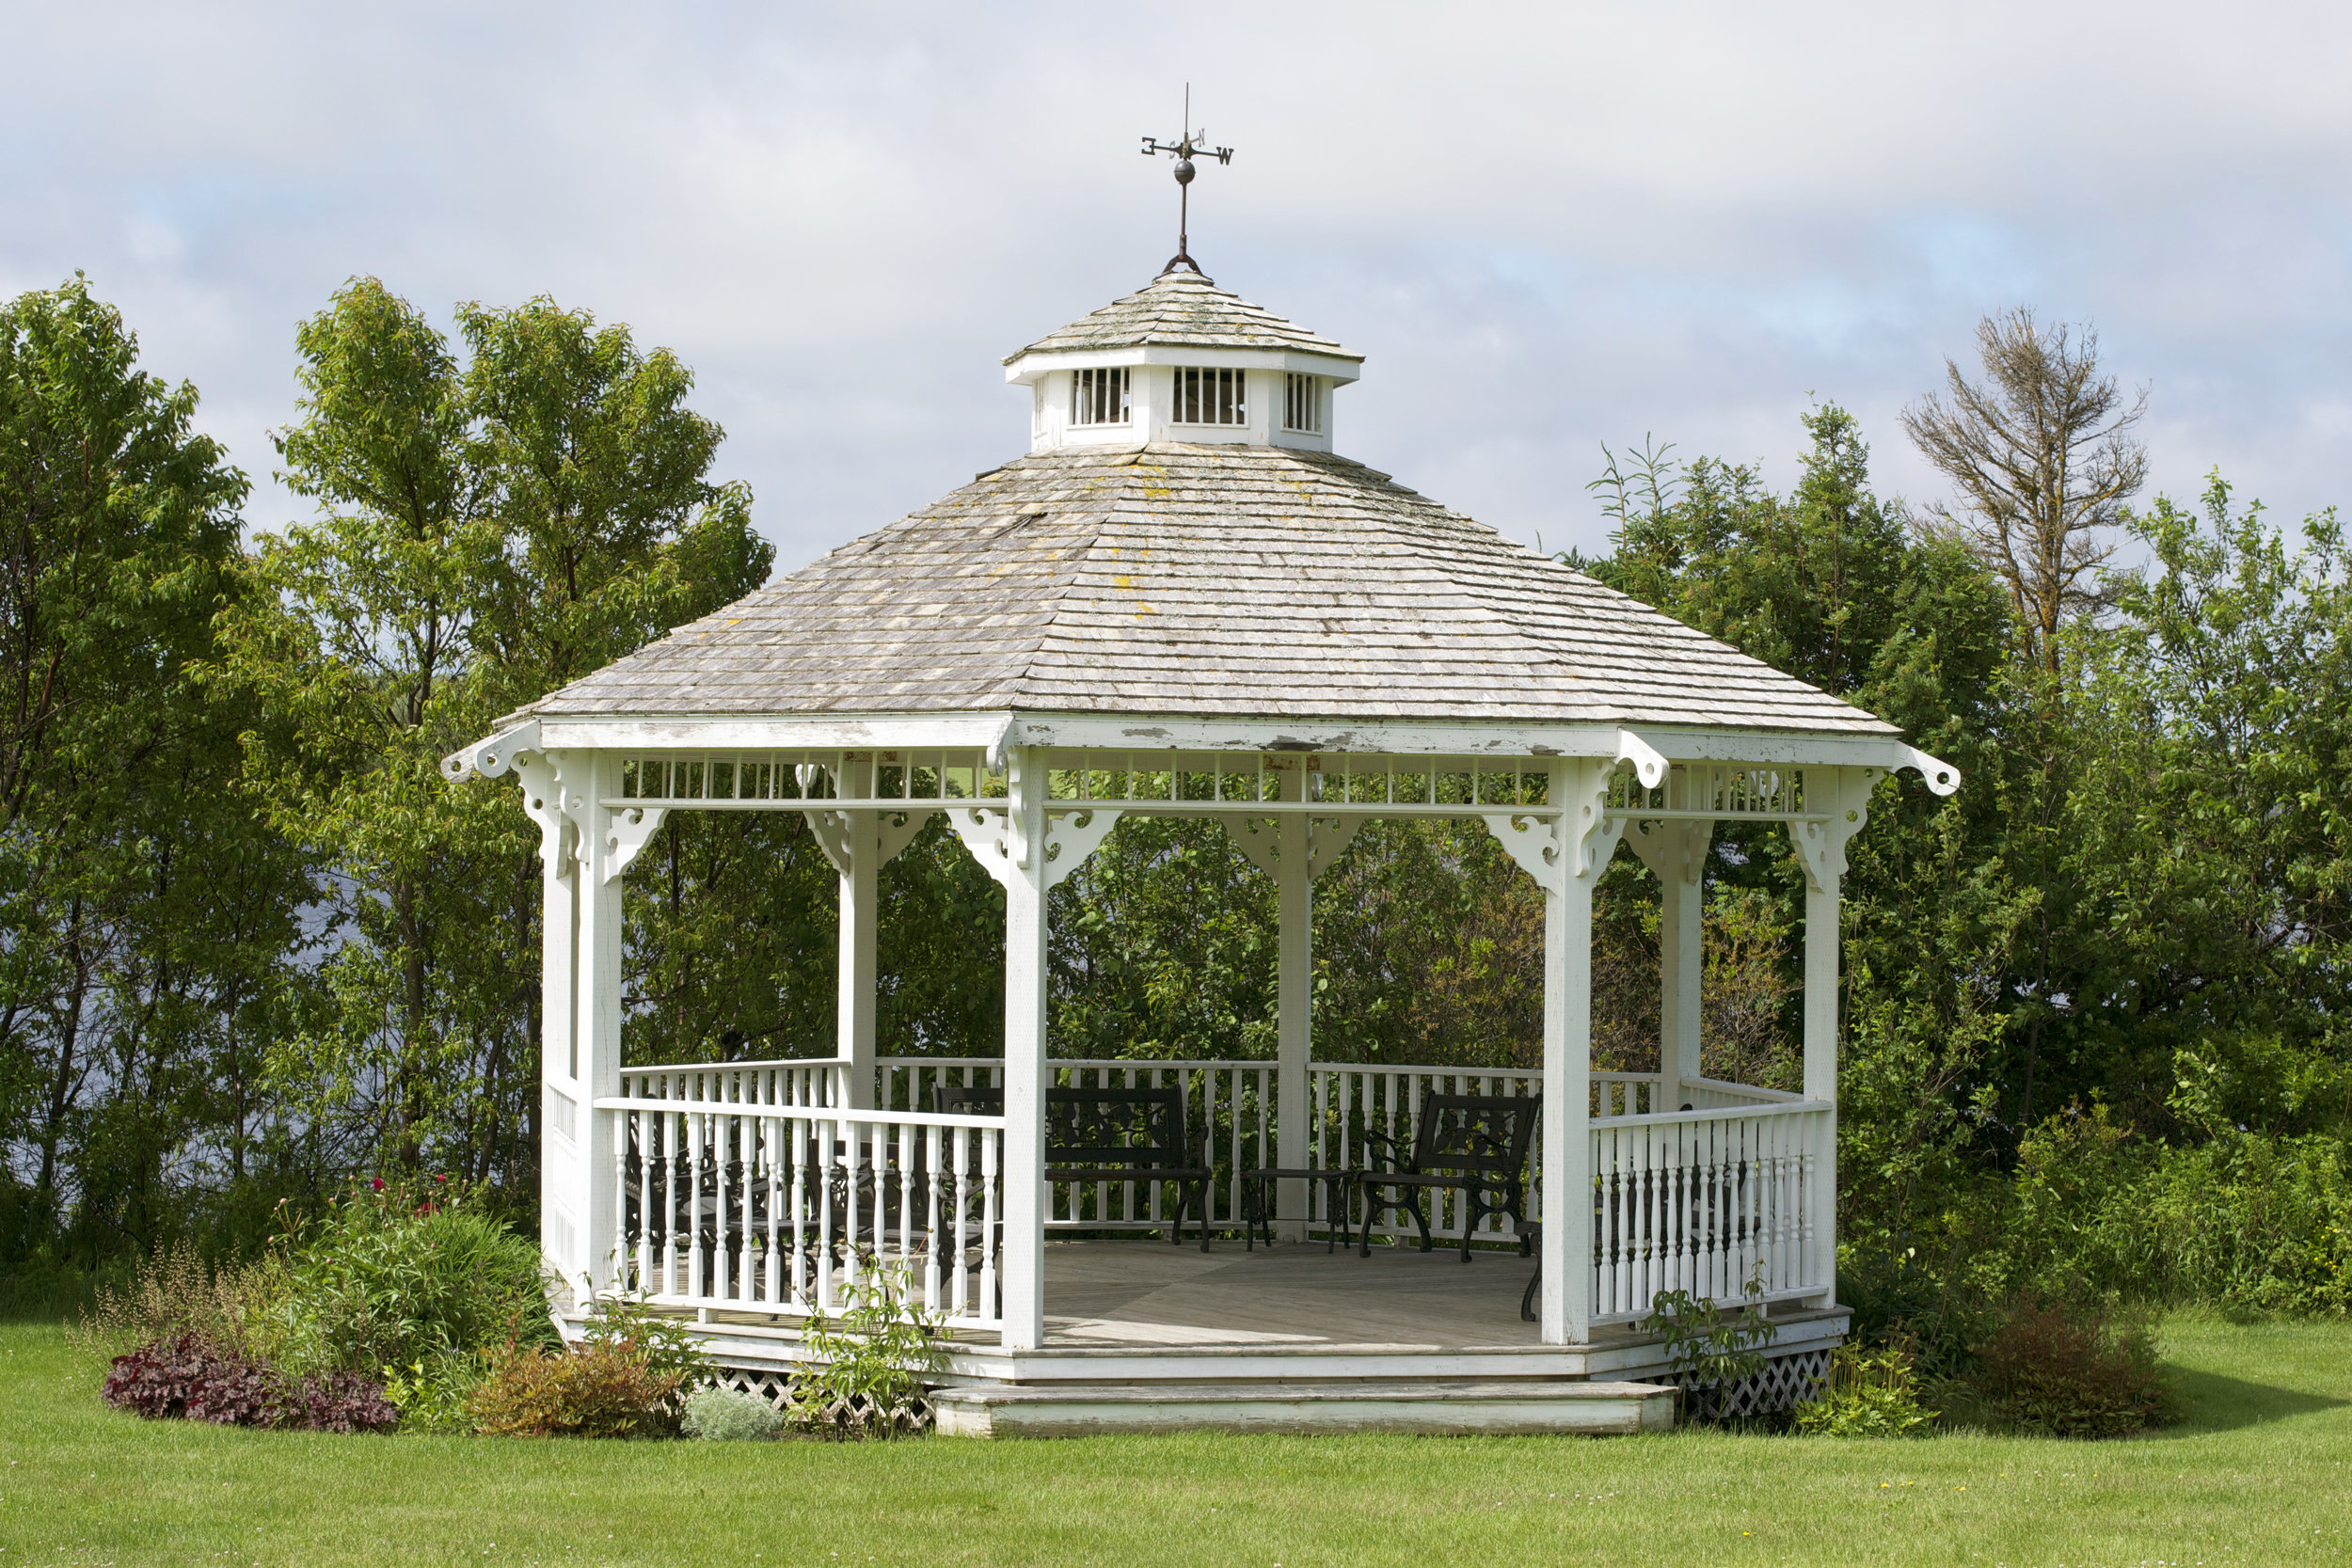 gazebo-close-up.jpg